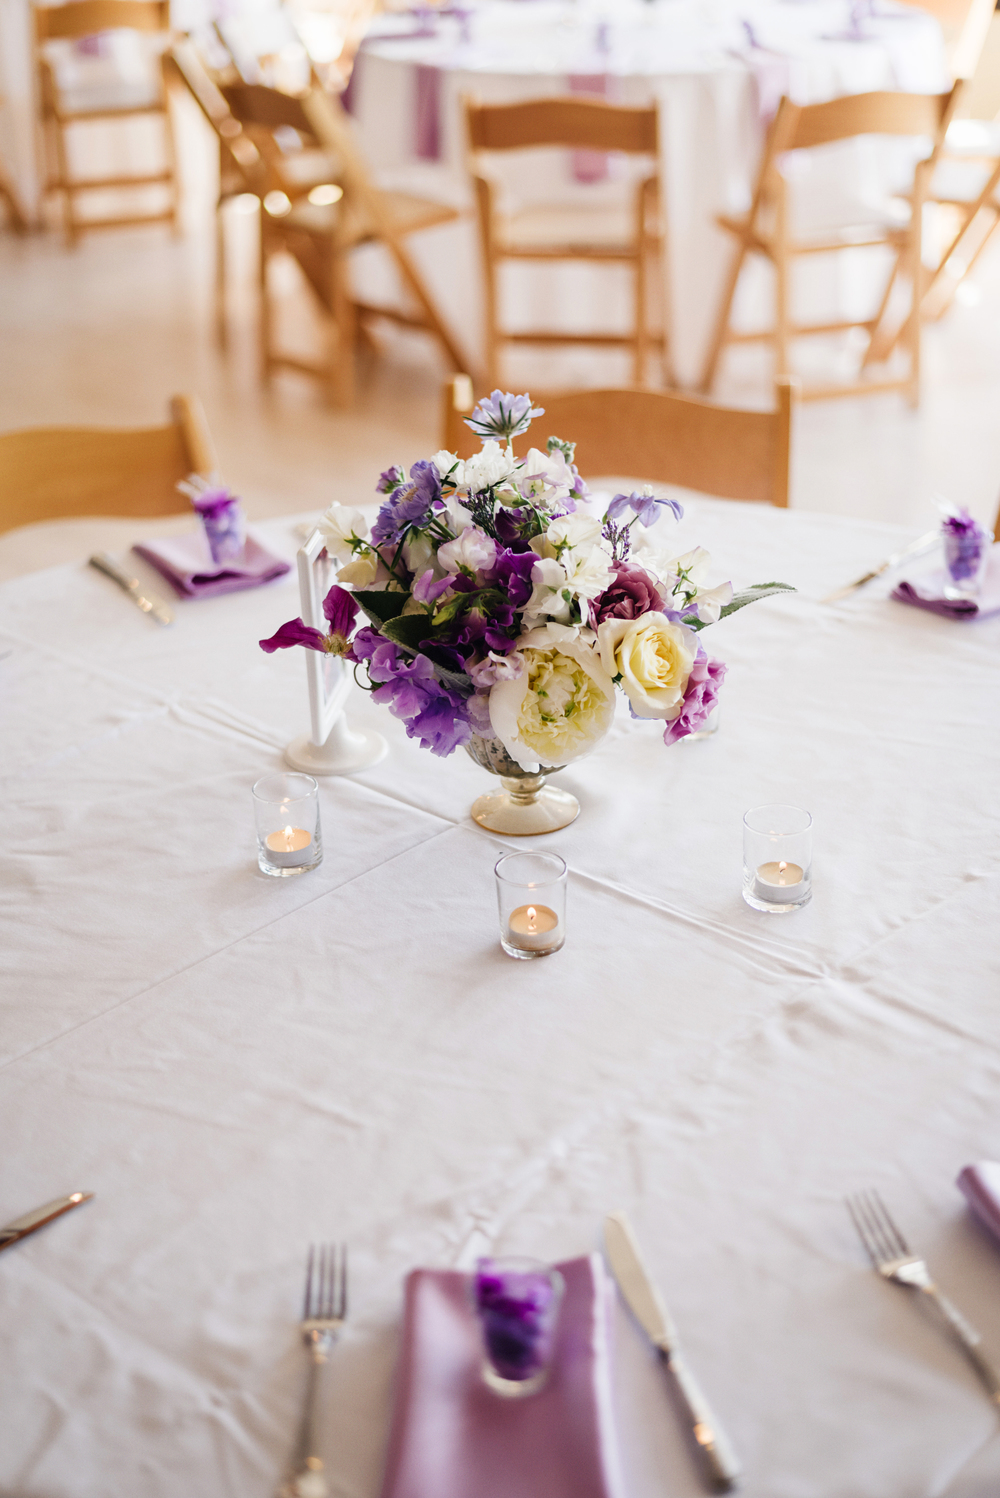 Purple and White Wedding Centerpiece | Joe and Patience Photography | Filipino Wedding Planner | Seattle Wedding Planner | Ballard Bay Club Wedding